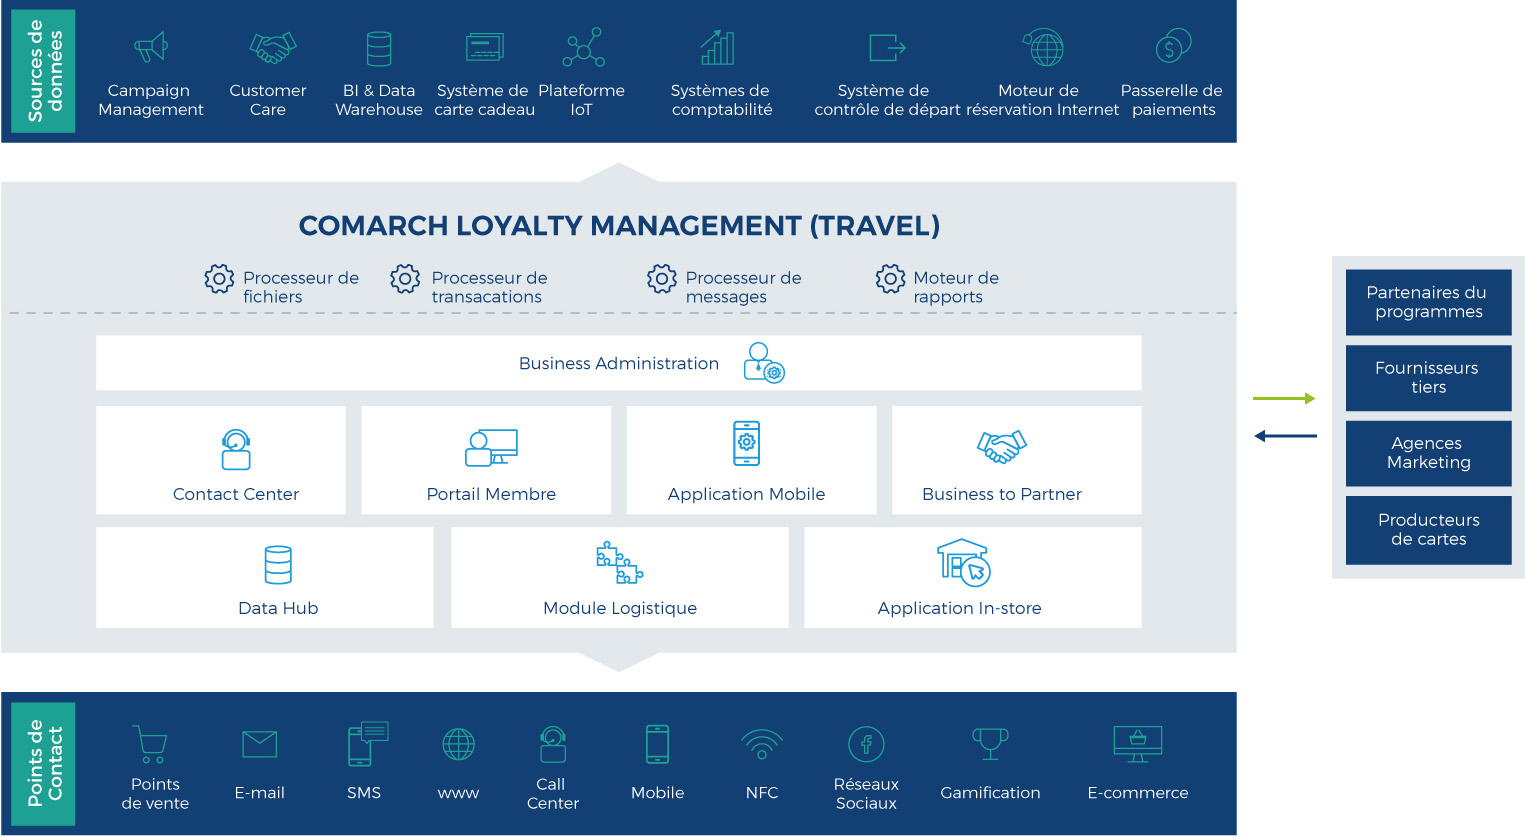 comarch clm travel edition